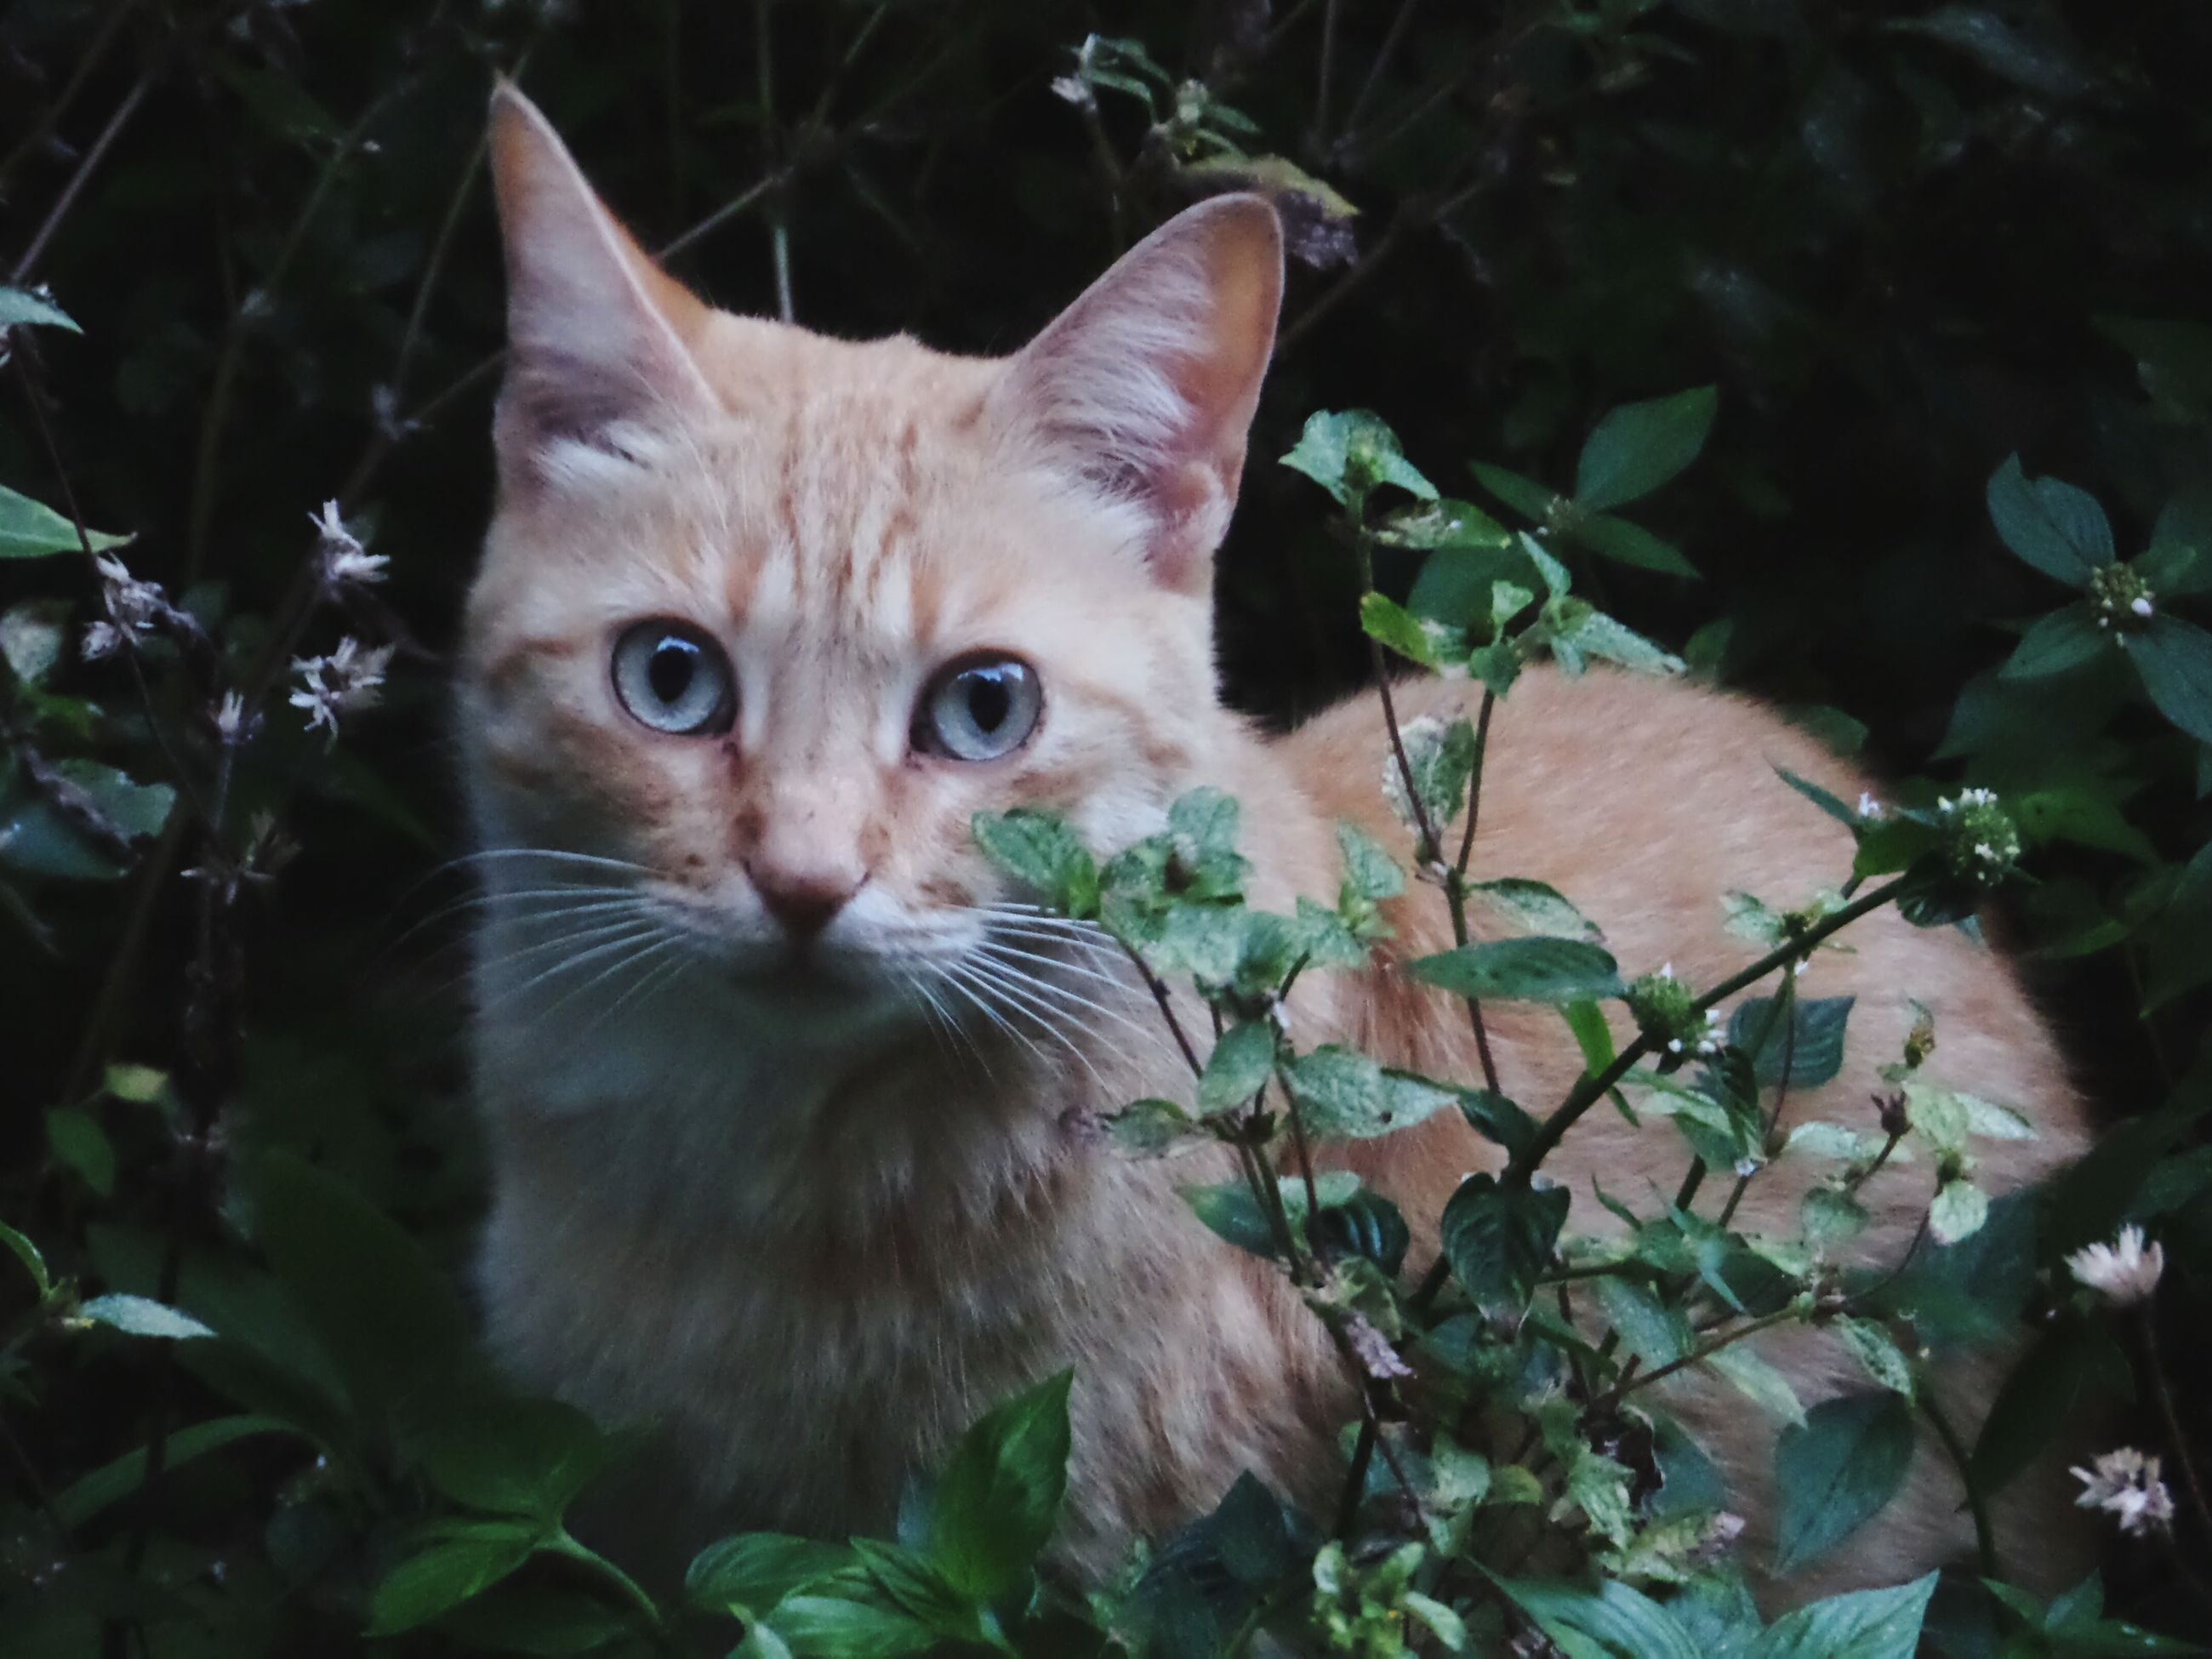 domestic cat, feline, mammal, looking at camera, pets, domestic animals, one animal, portrait, animal themes, plant, leaf, no people, nature, outdoors, day, close-up